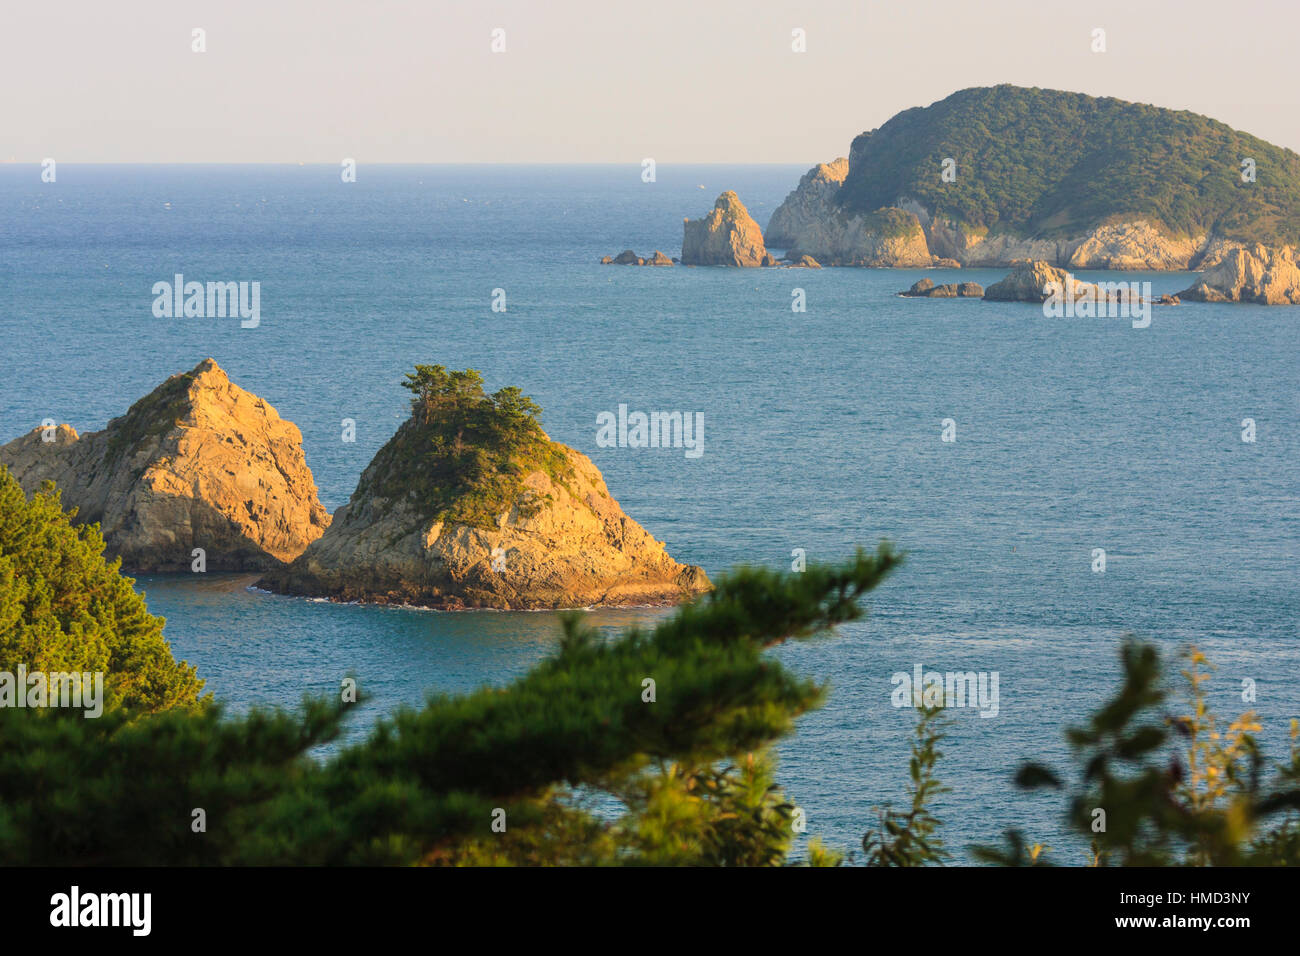 Daesobyeongdaedo near sunset; small islands off of Geojedo, South Korea - Stock Image